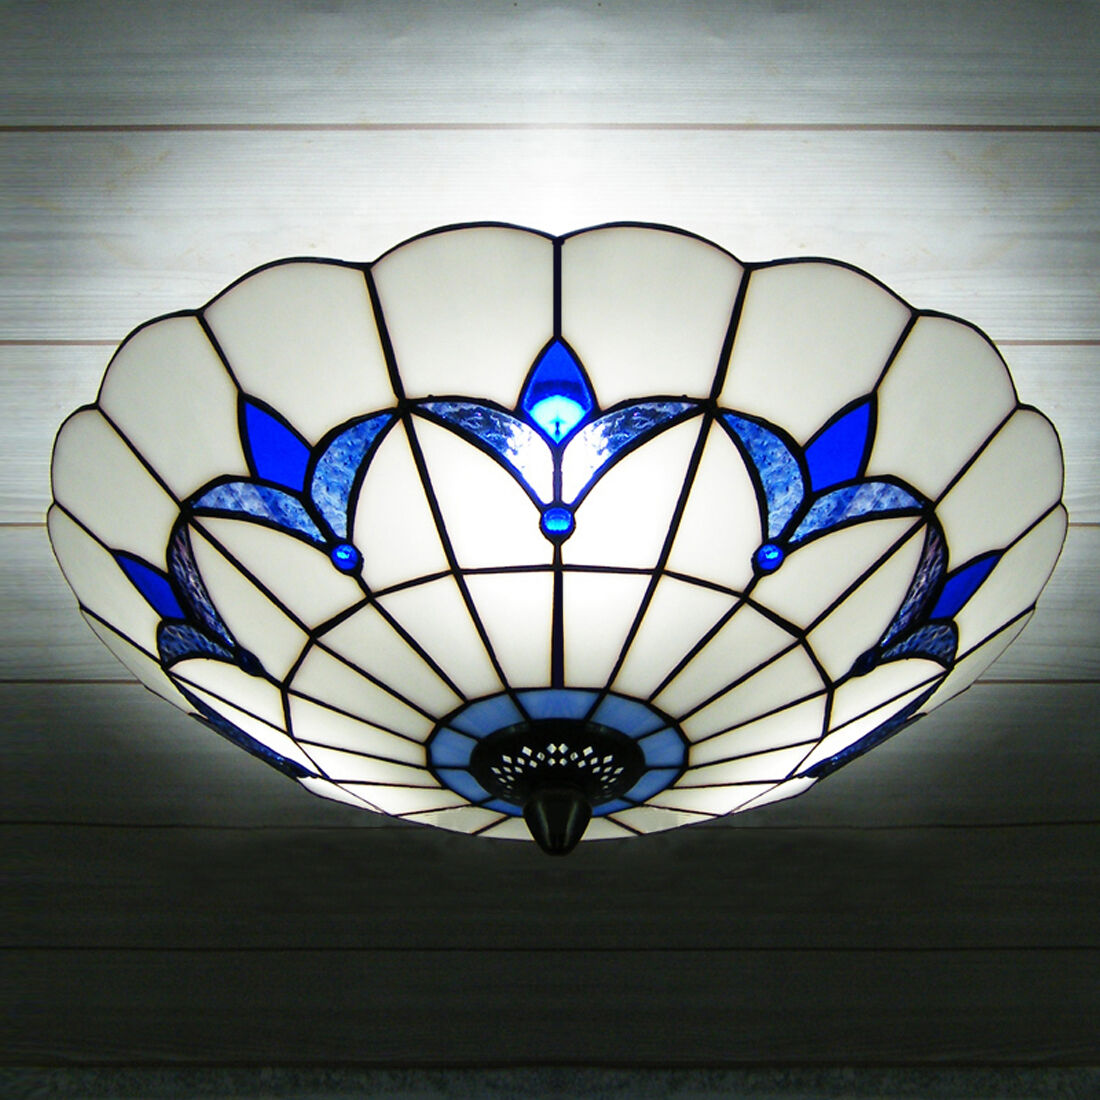 Three Lights Blue Flowers Motif Glass Shade Flush Mount Ceiling Light